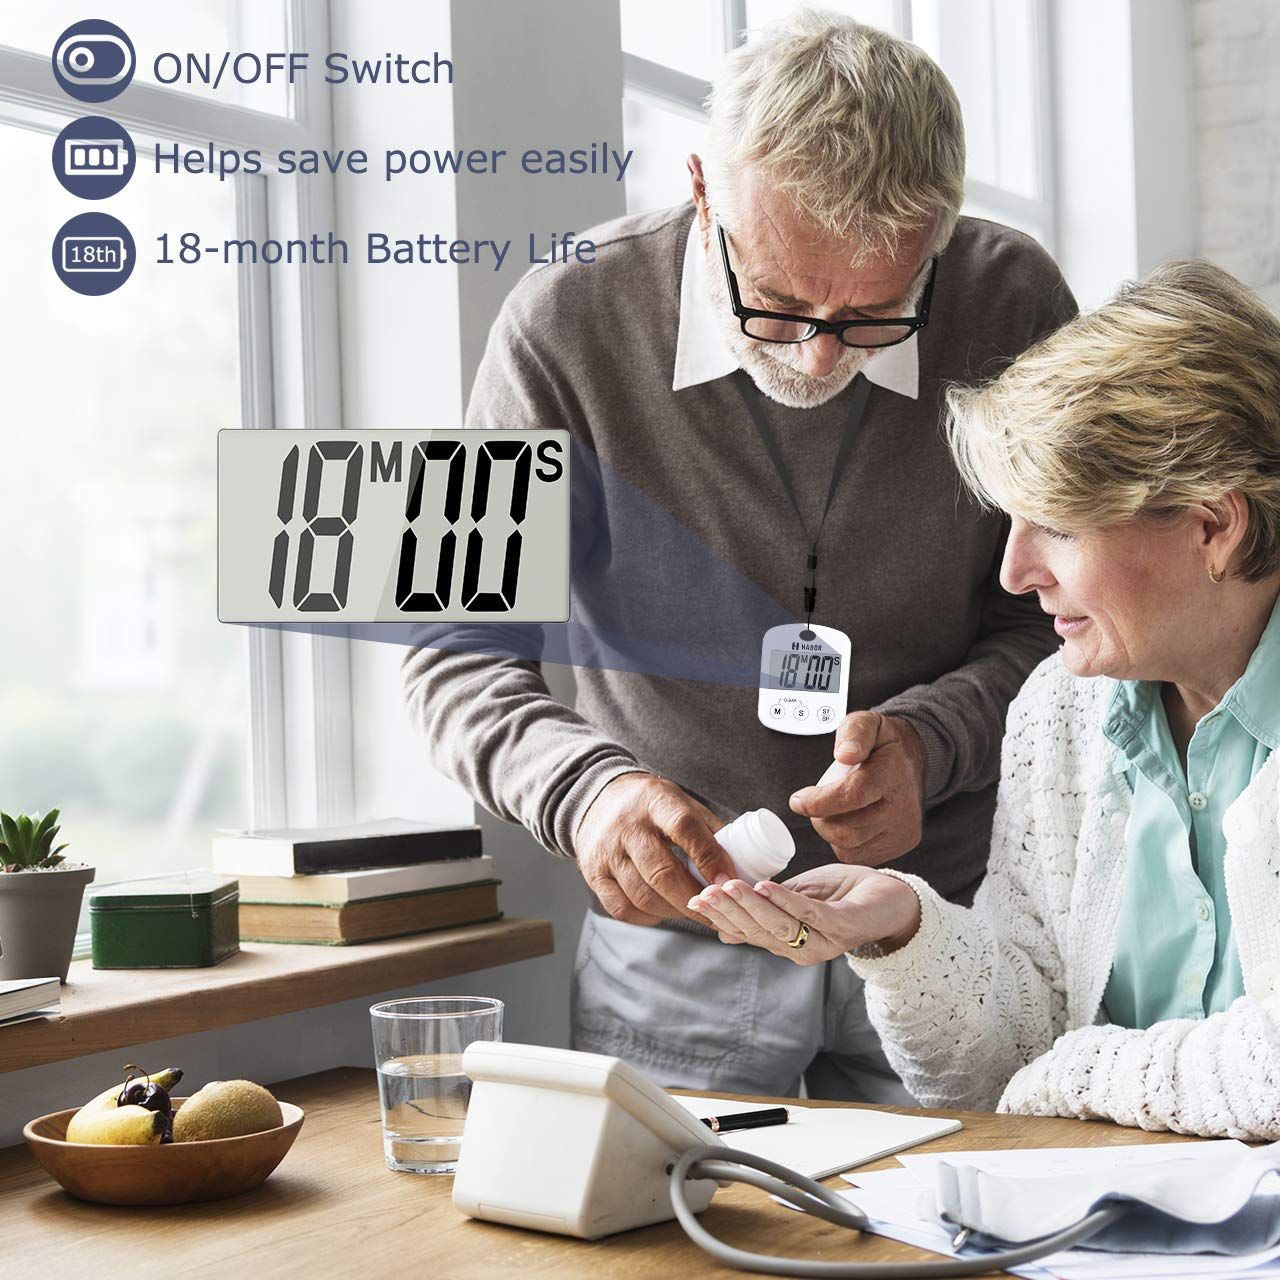 Strong Magnet Back Battery Included ON//OFF Switch Large LCD Screen Kitchen Timer with Loud Beep Habor Digital Cooking Timer Count-Up /& Count Down for Cooking Baking Sports Studying Games